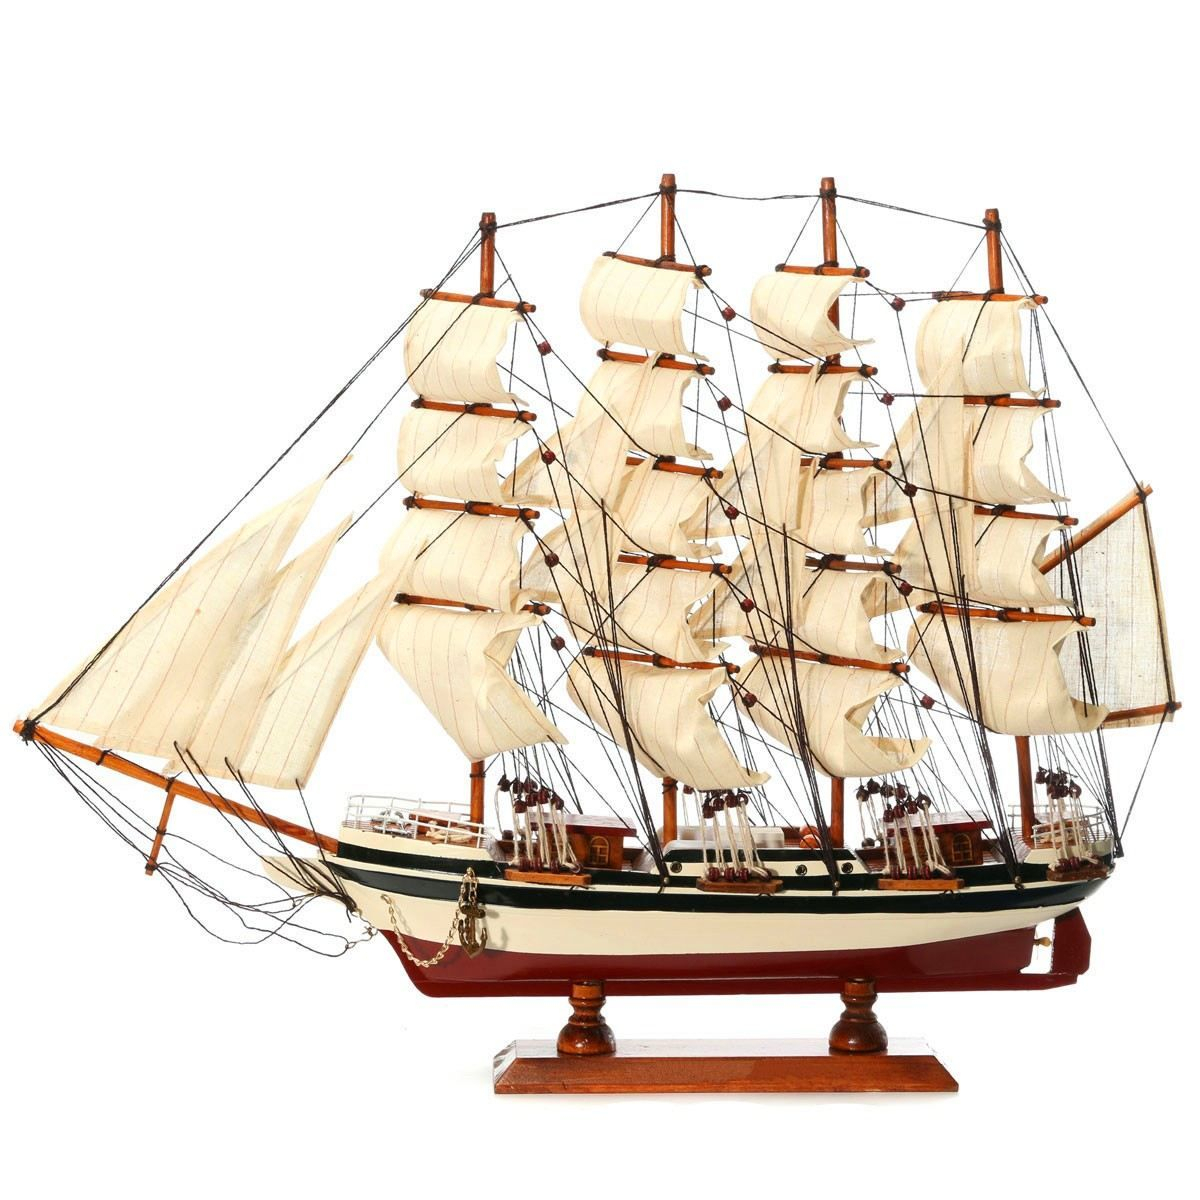 Diy Handmade Assembly Ship Craft Wooden Sailing Boat Wood Sailboat Intended For Best And Newest Metal Alloy Boat Wall Decor (View 8 of 20)